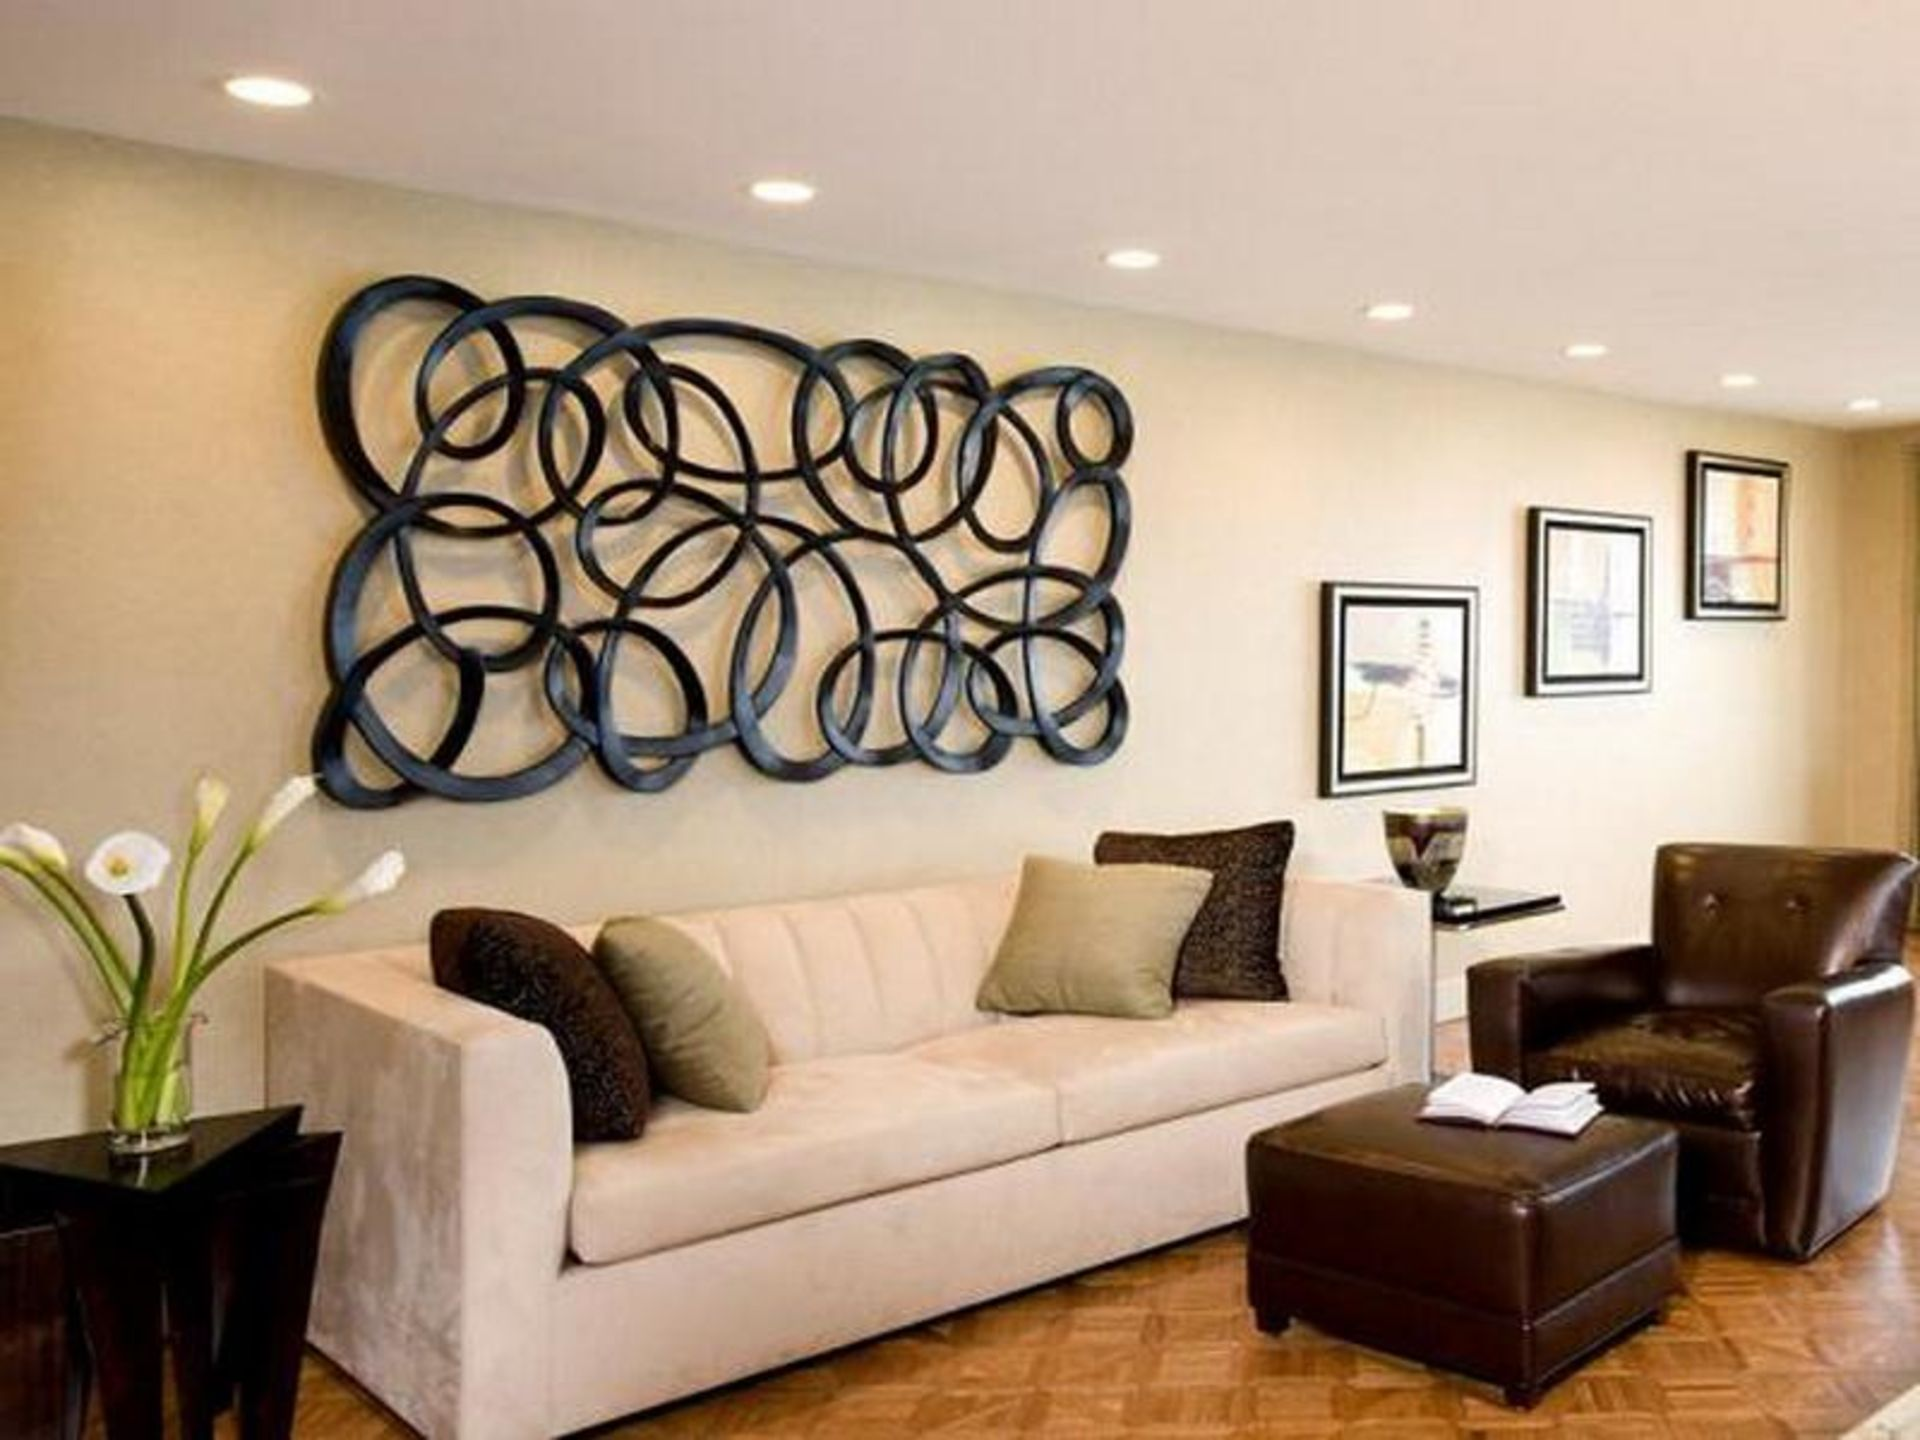 10 Ways To Cover A Big Wall In Your Home